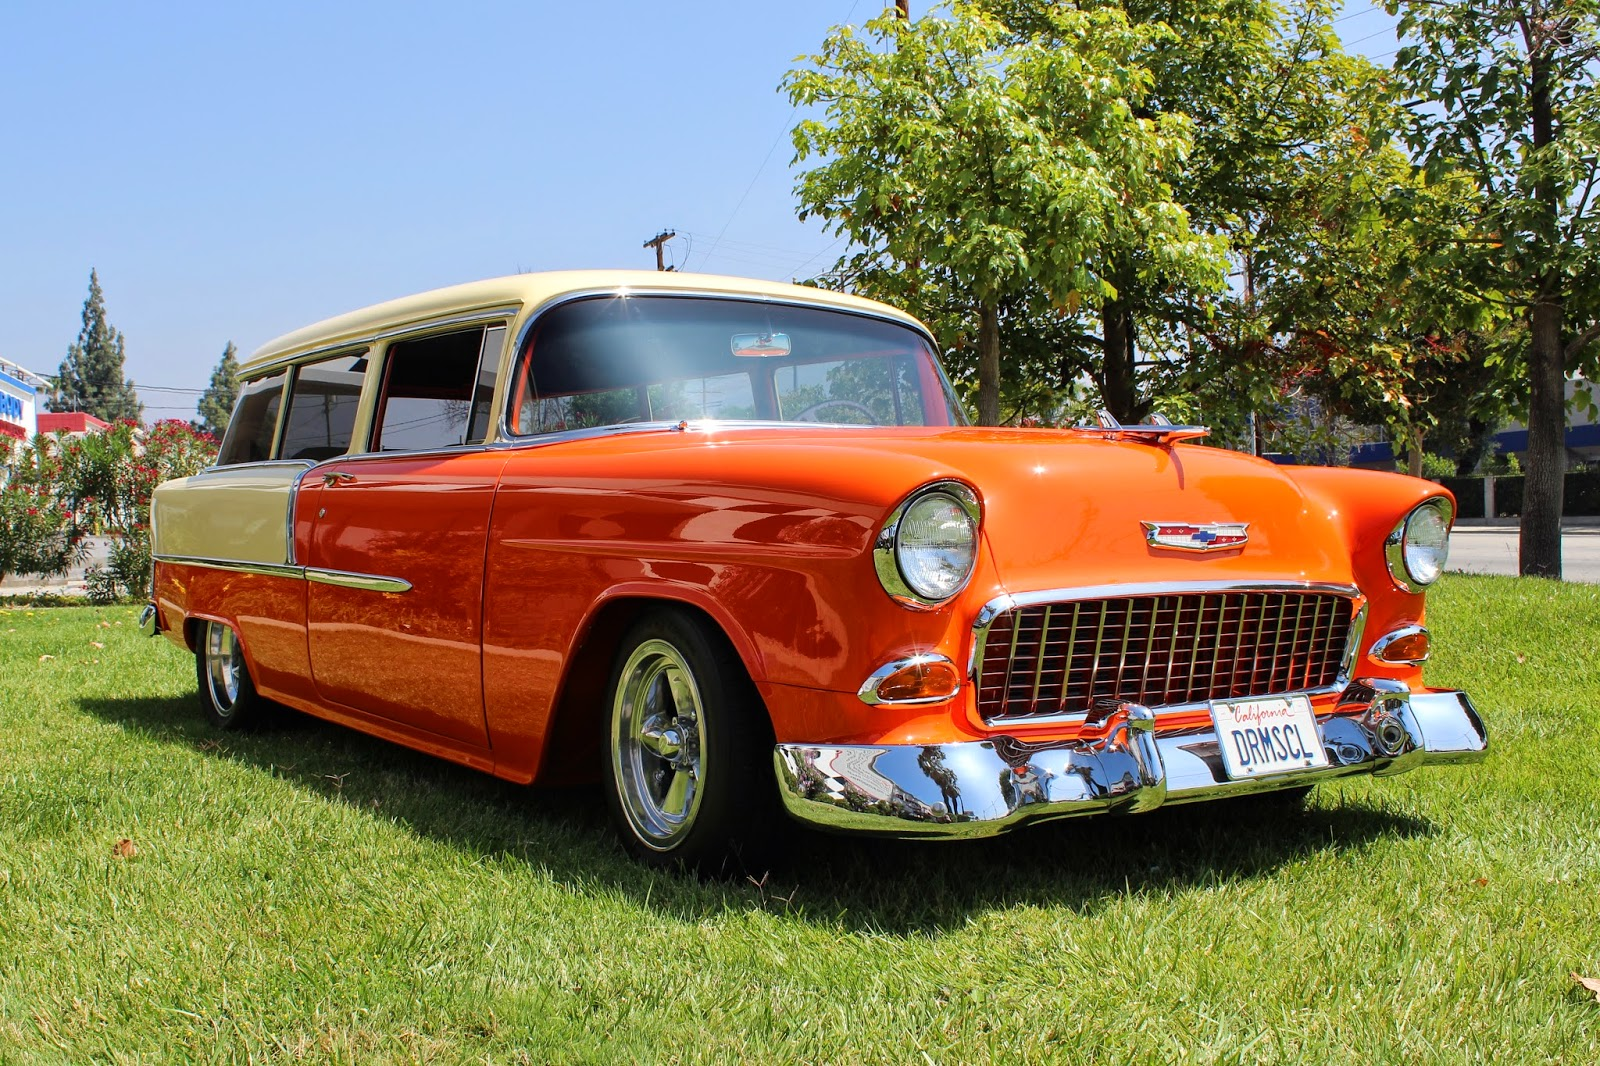 1955 chevrolet handyman 2 door wagon street rod - This Chevy Is Not A Standard Station Wagon But A 210 Handyman Wagon The Owner Phil Dolman Finished The Wagon With 1955 Chevy Passenger Car Trim And